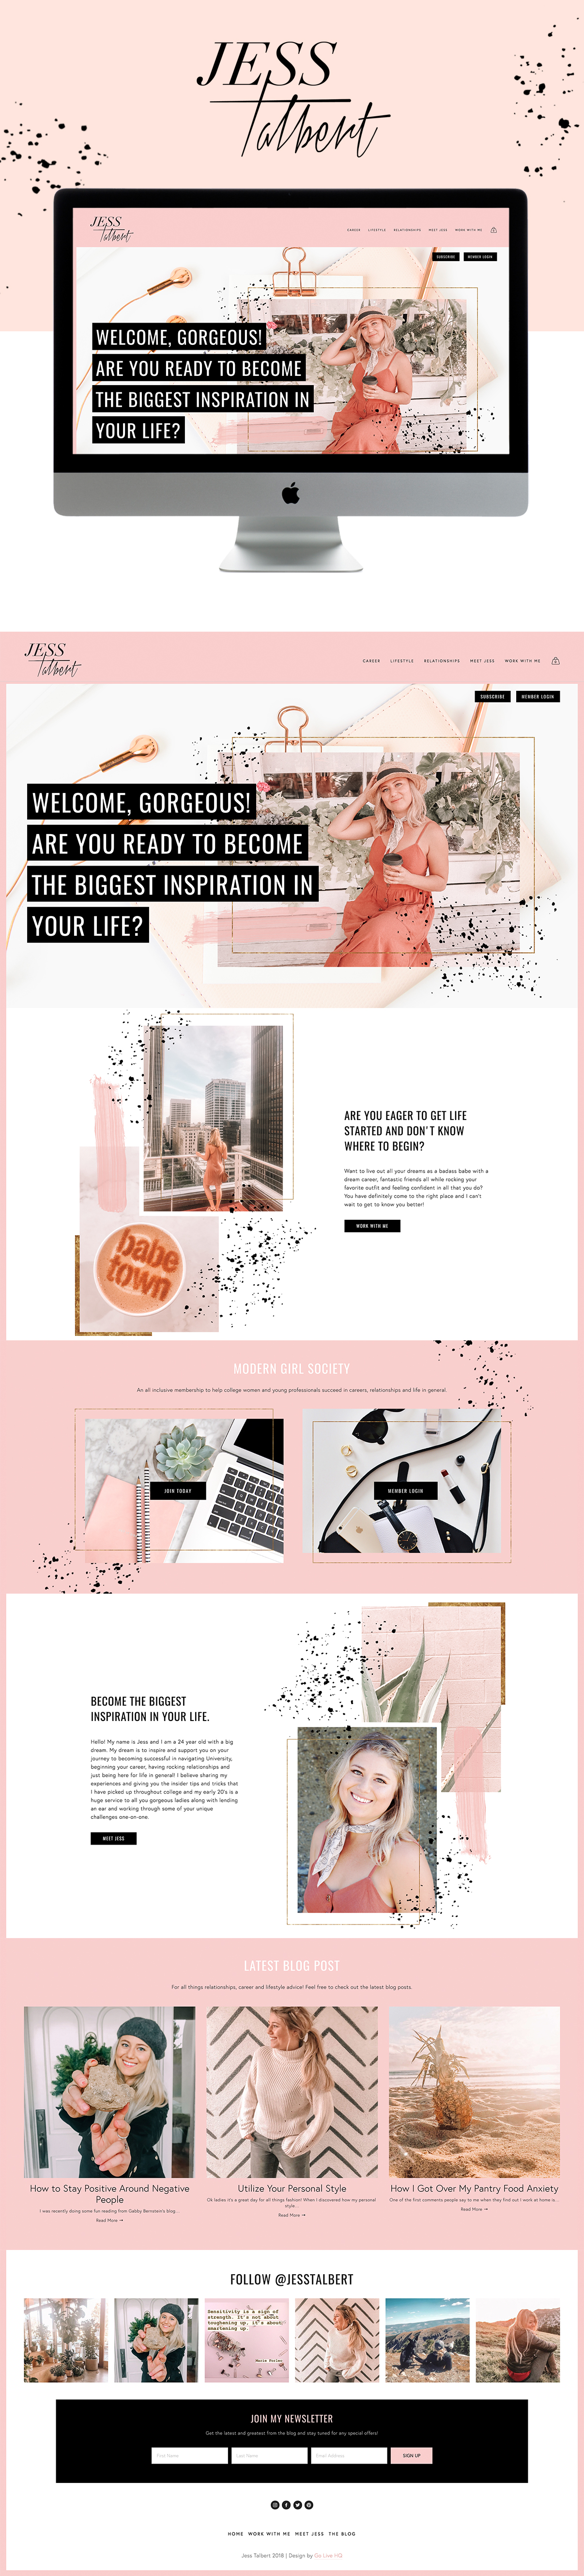 Artistic, Girly, Modern Website for Life Coach | Design by Go Live HQ